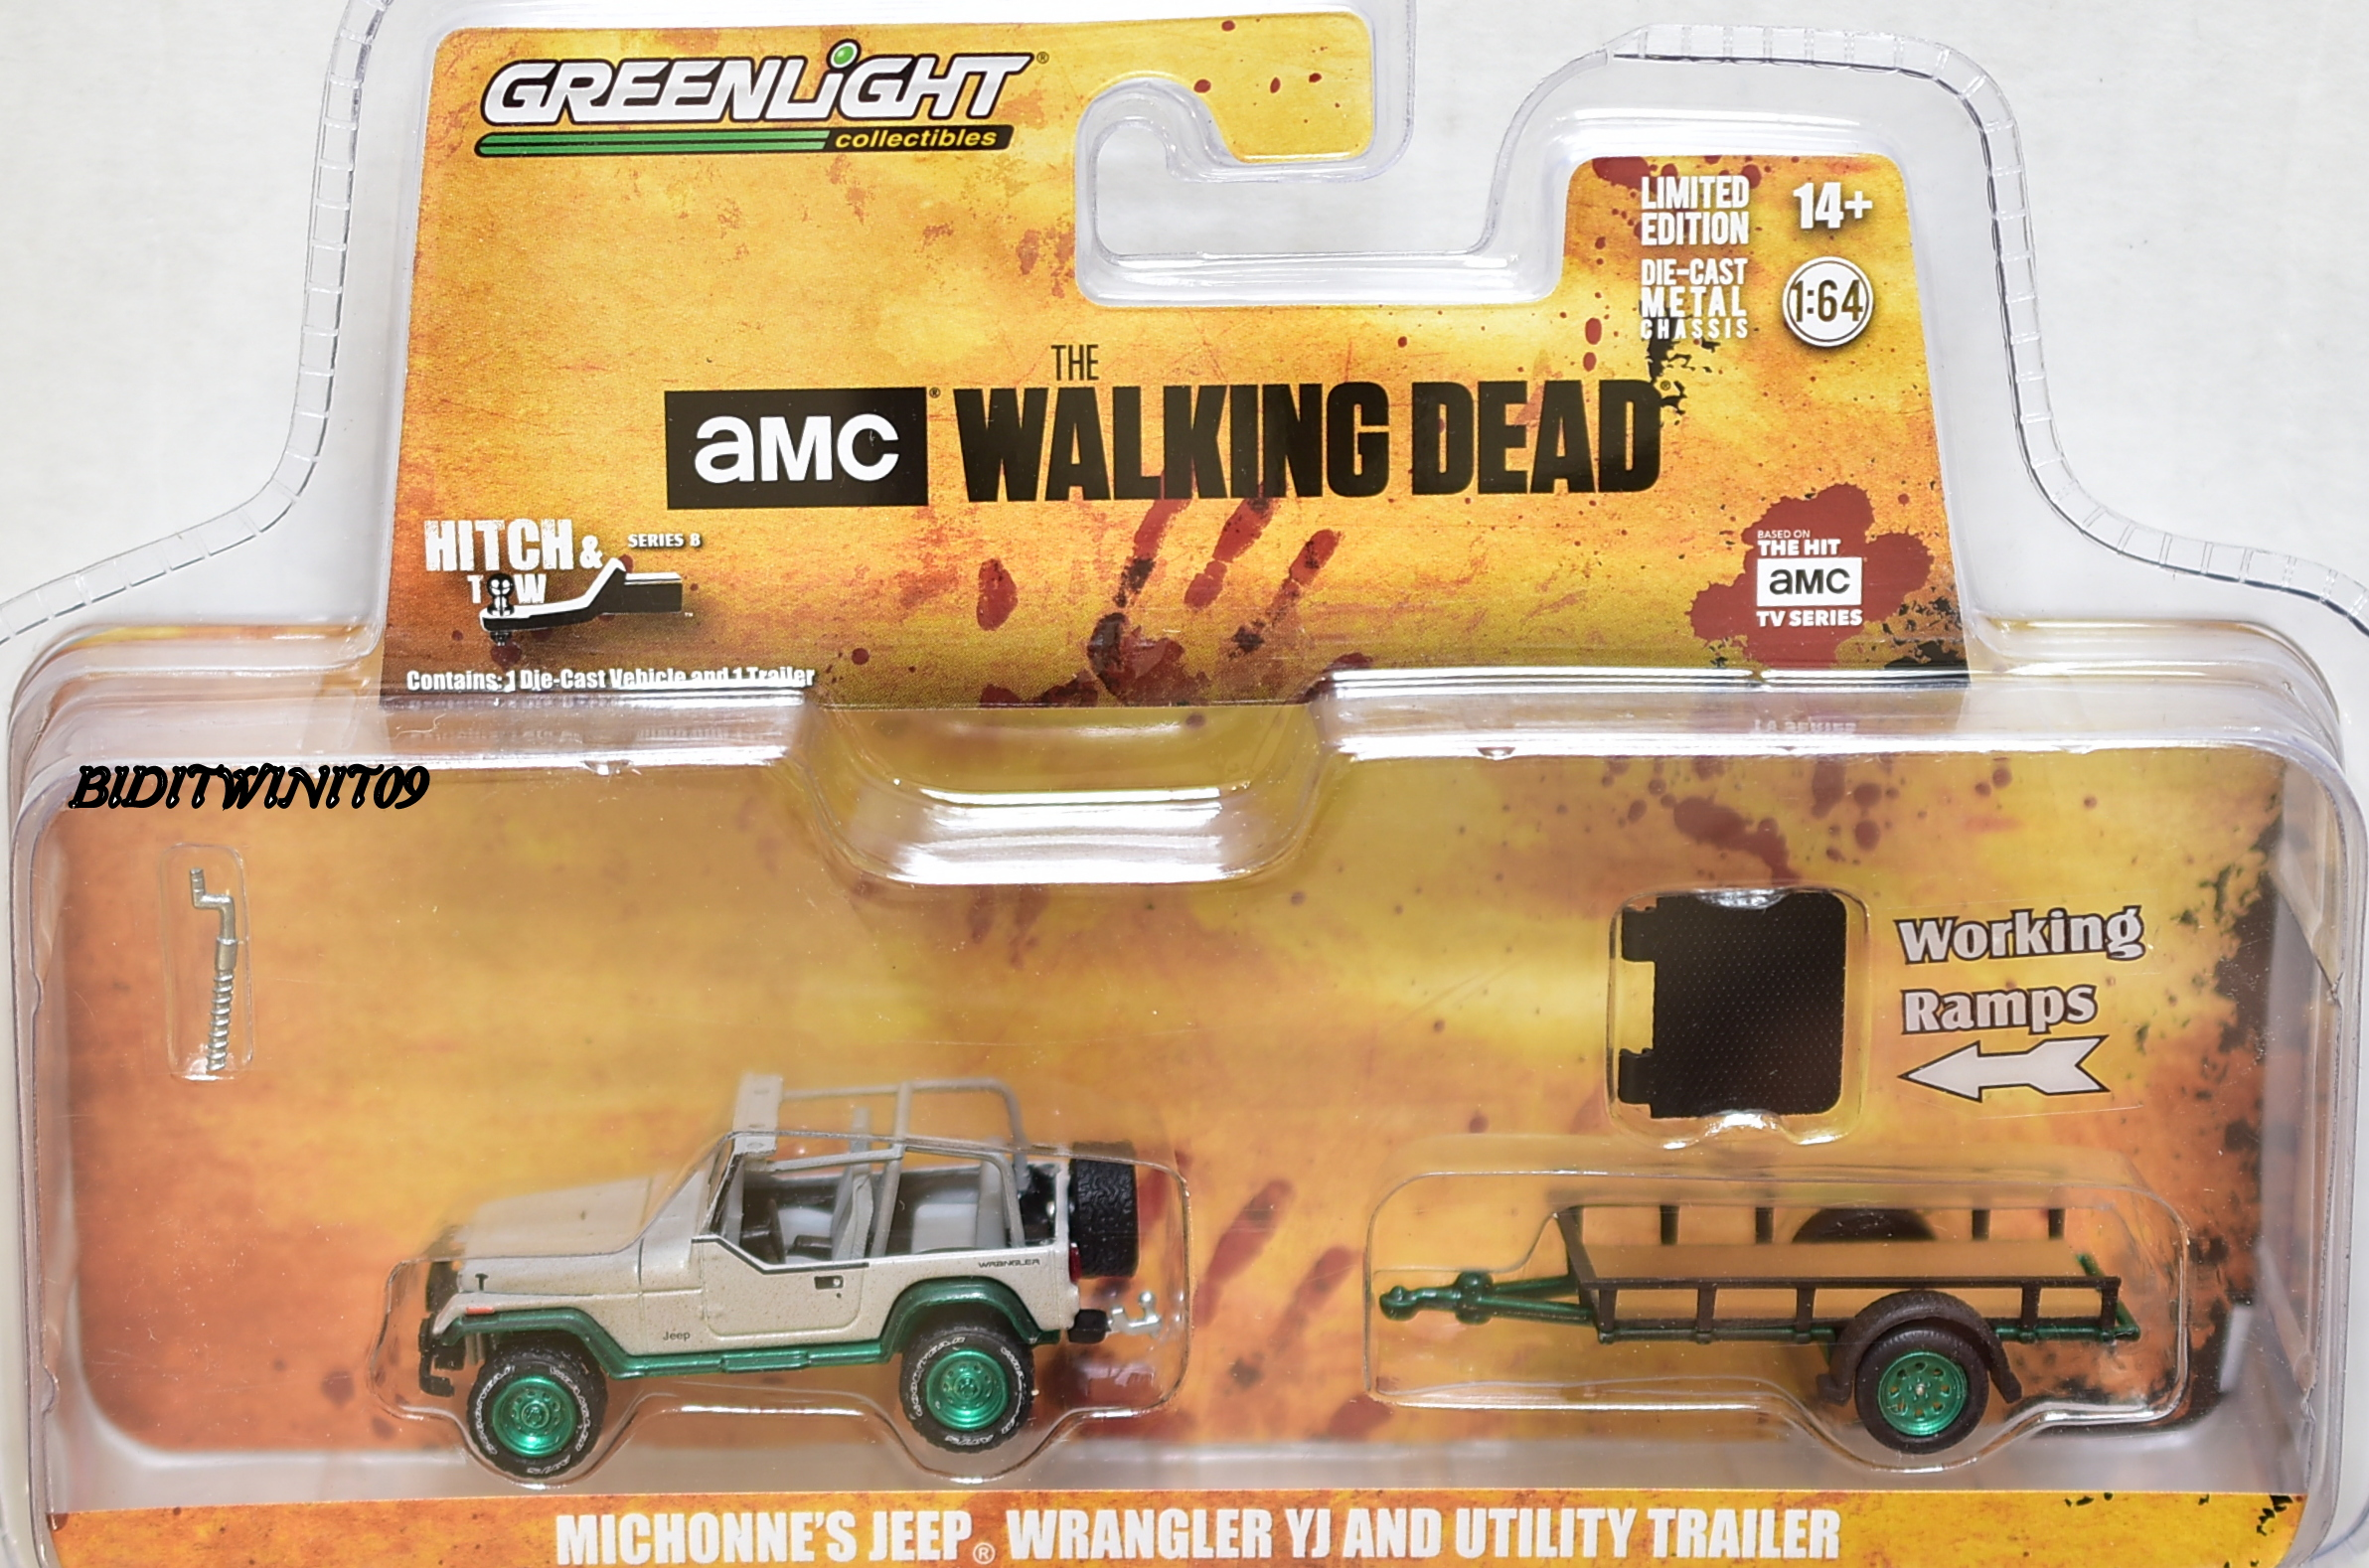 GREENLIGHT GREEN MACHINE MICHONNE'S JEEP WRANGLER YJ AND UTILITY TRAILER E+